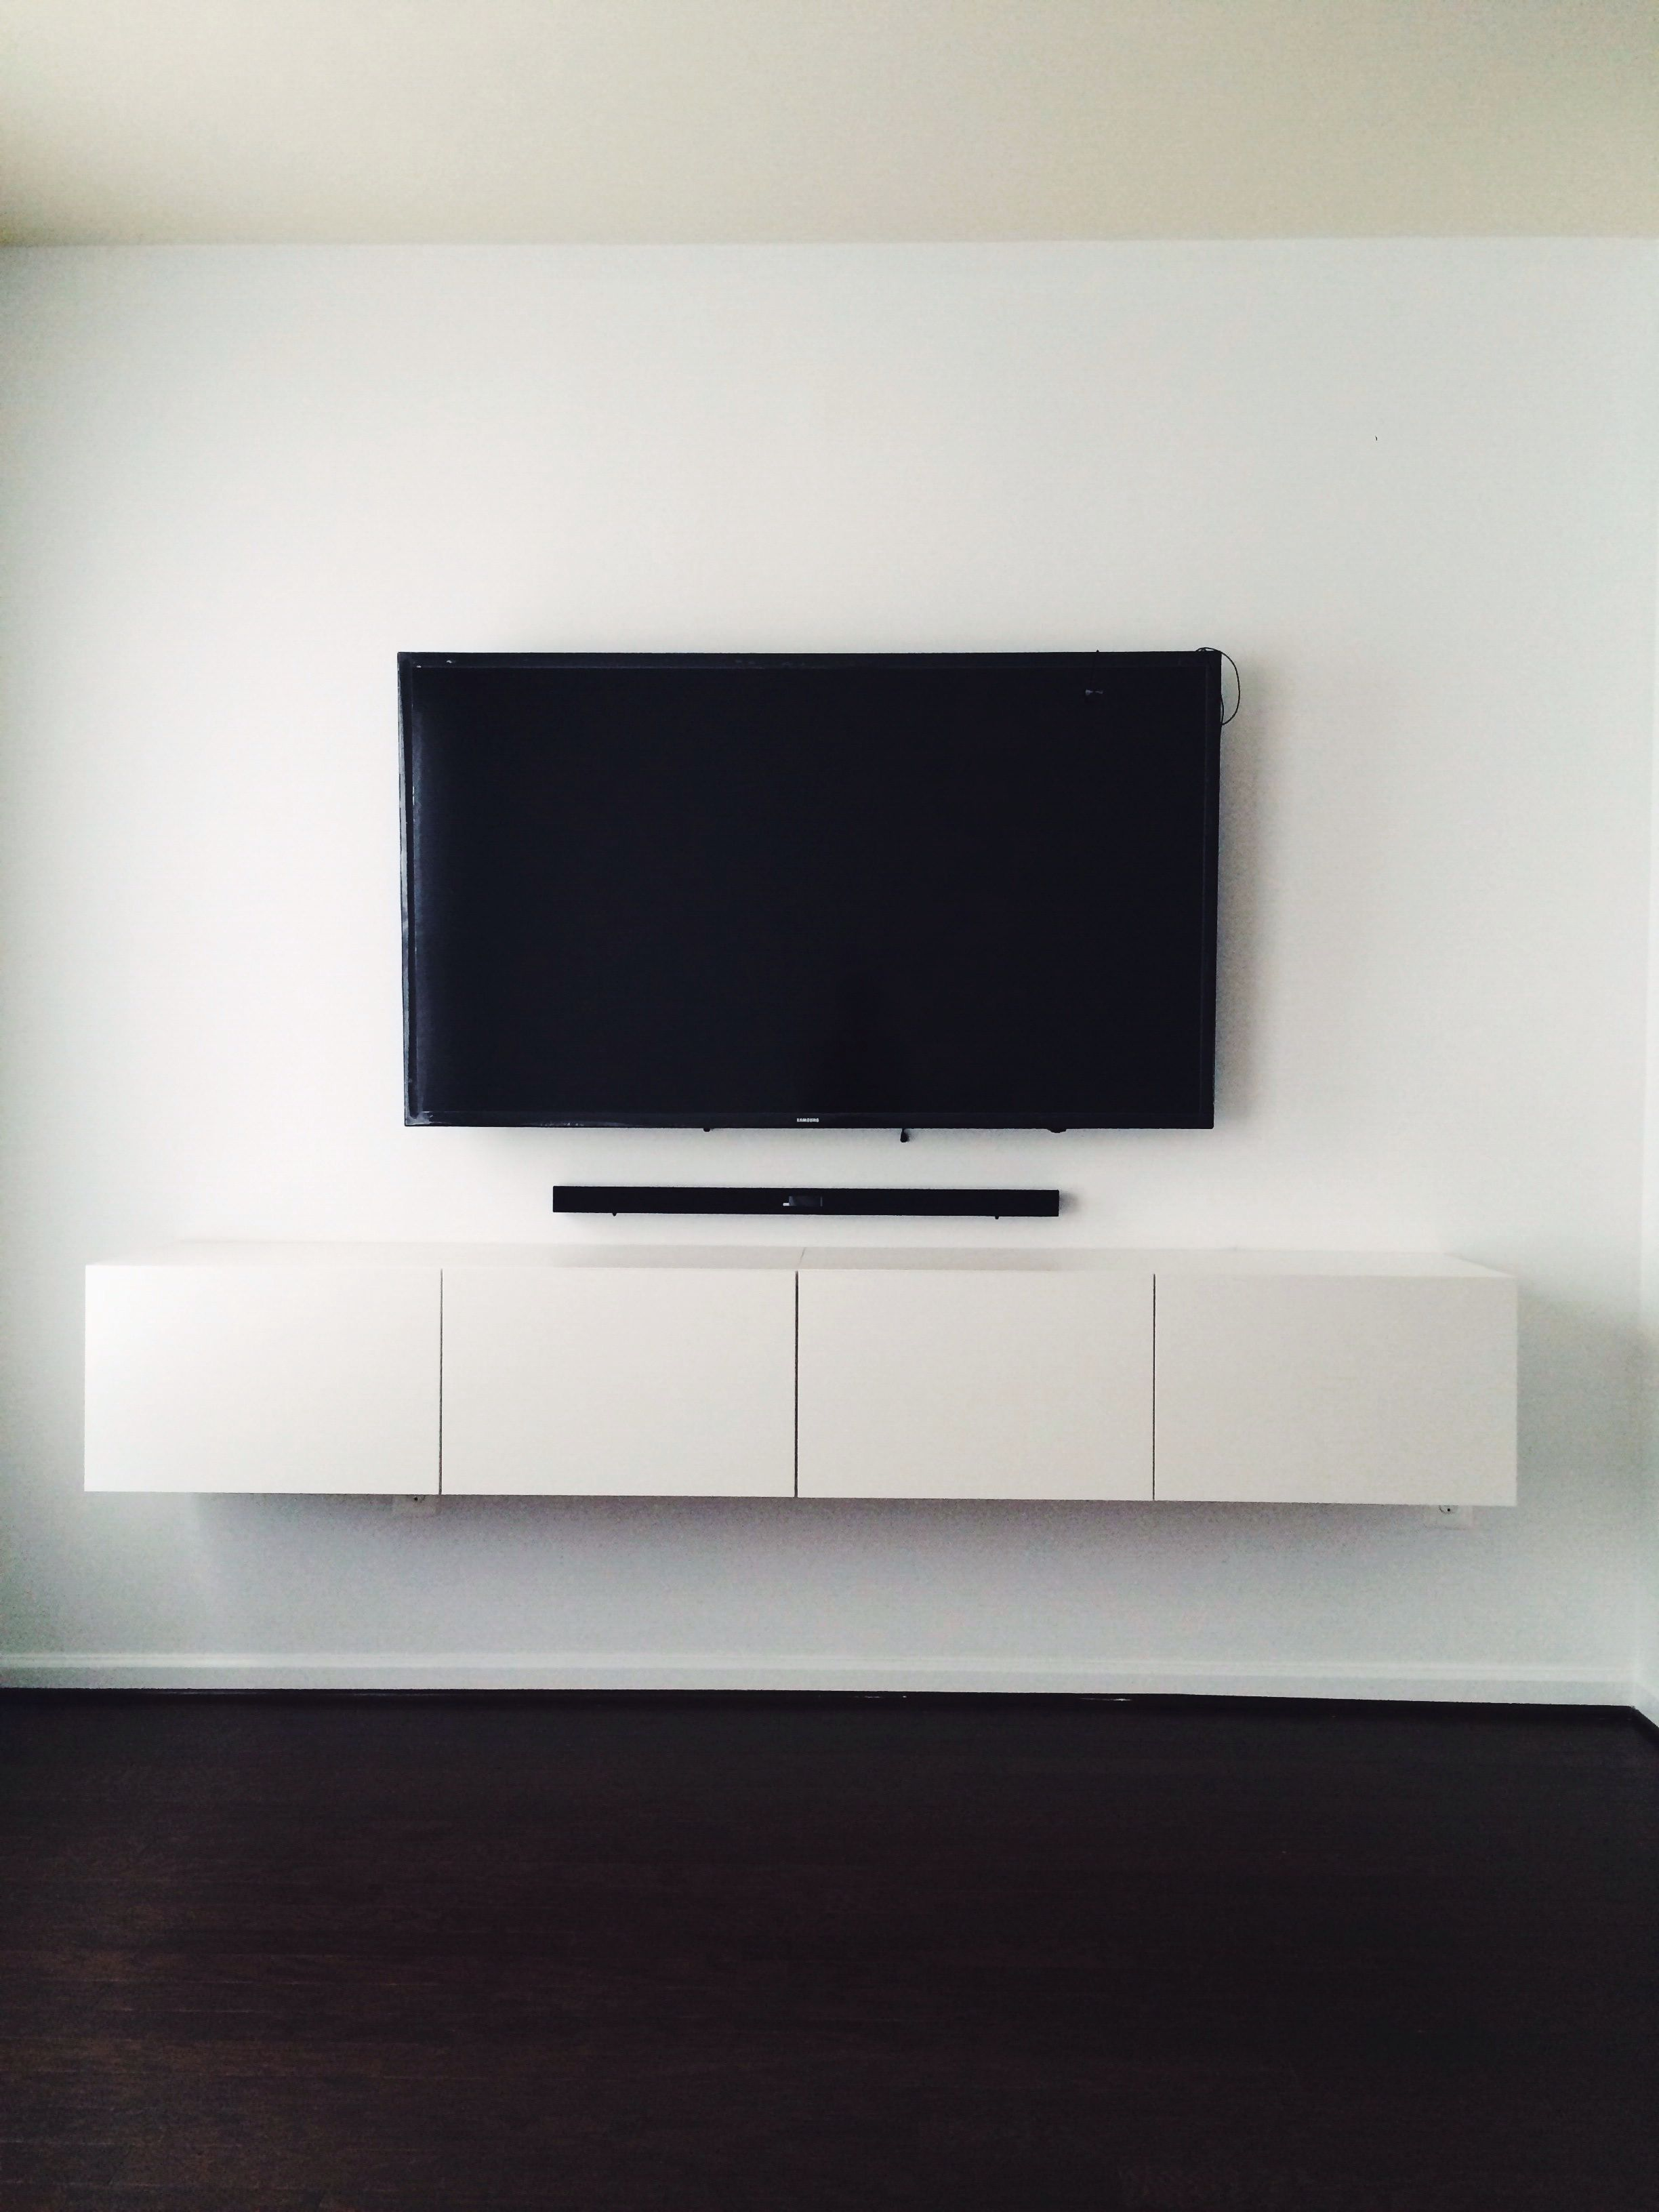 ikea bestÅ media console. mounted tv with hidden wires. now that's